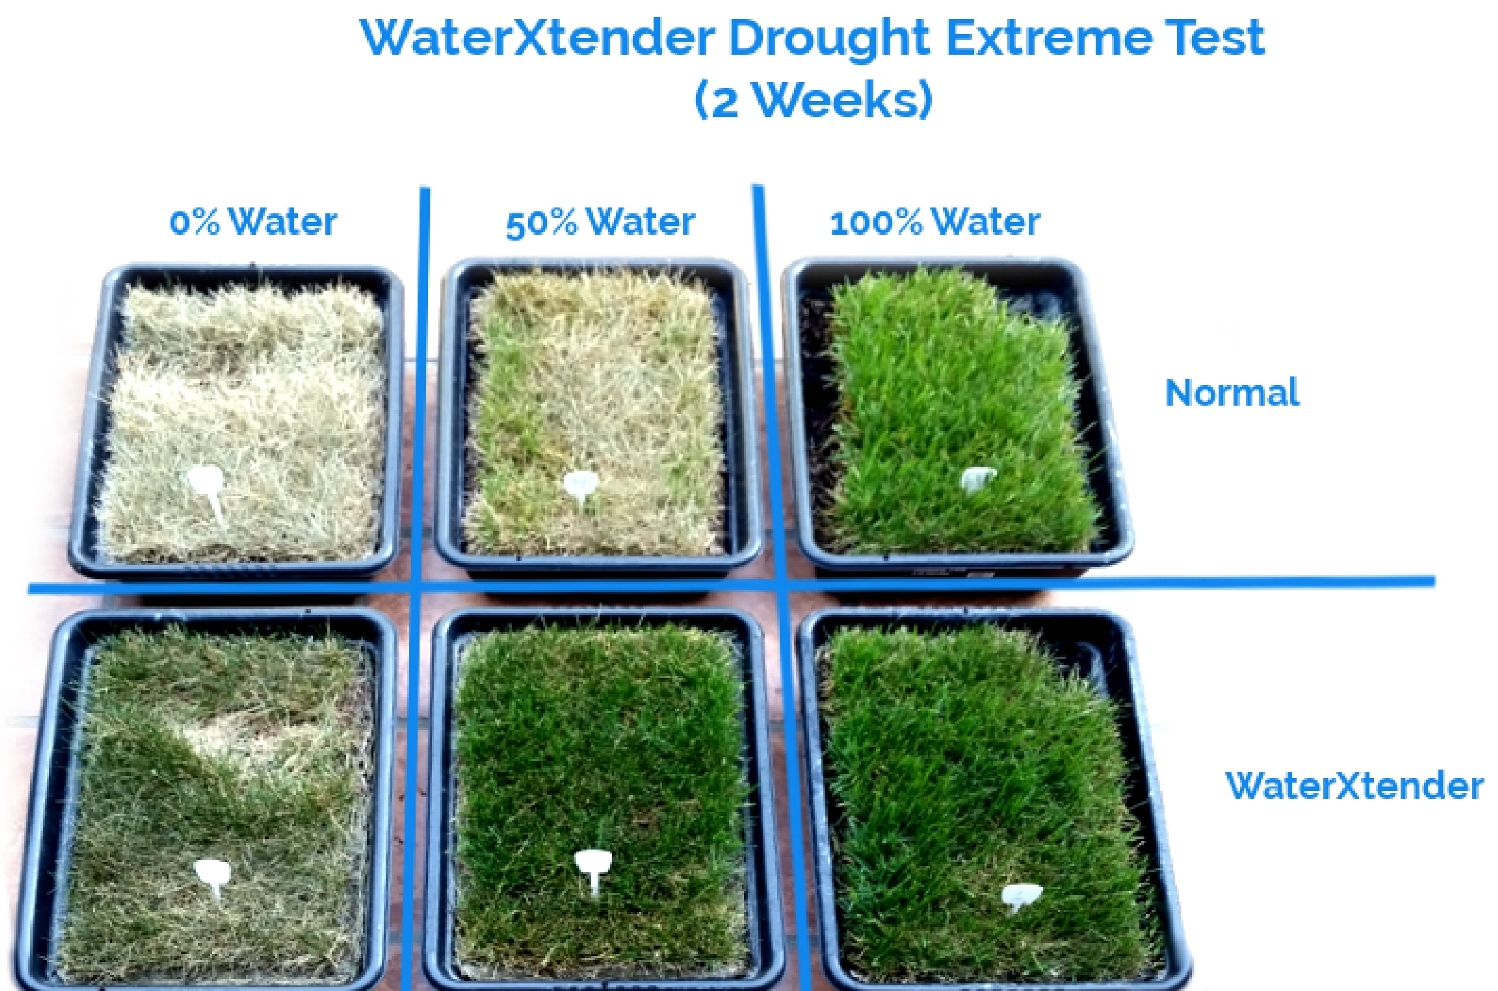 WaterXtender 6 Grass Samples Normal WaterXtender